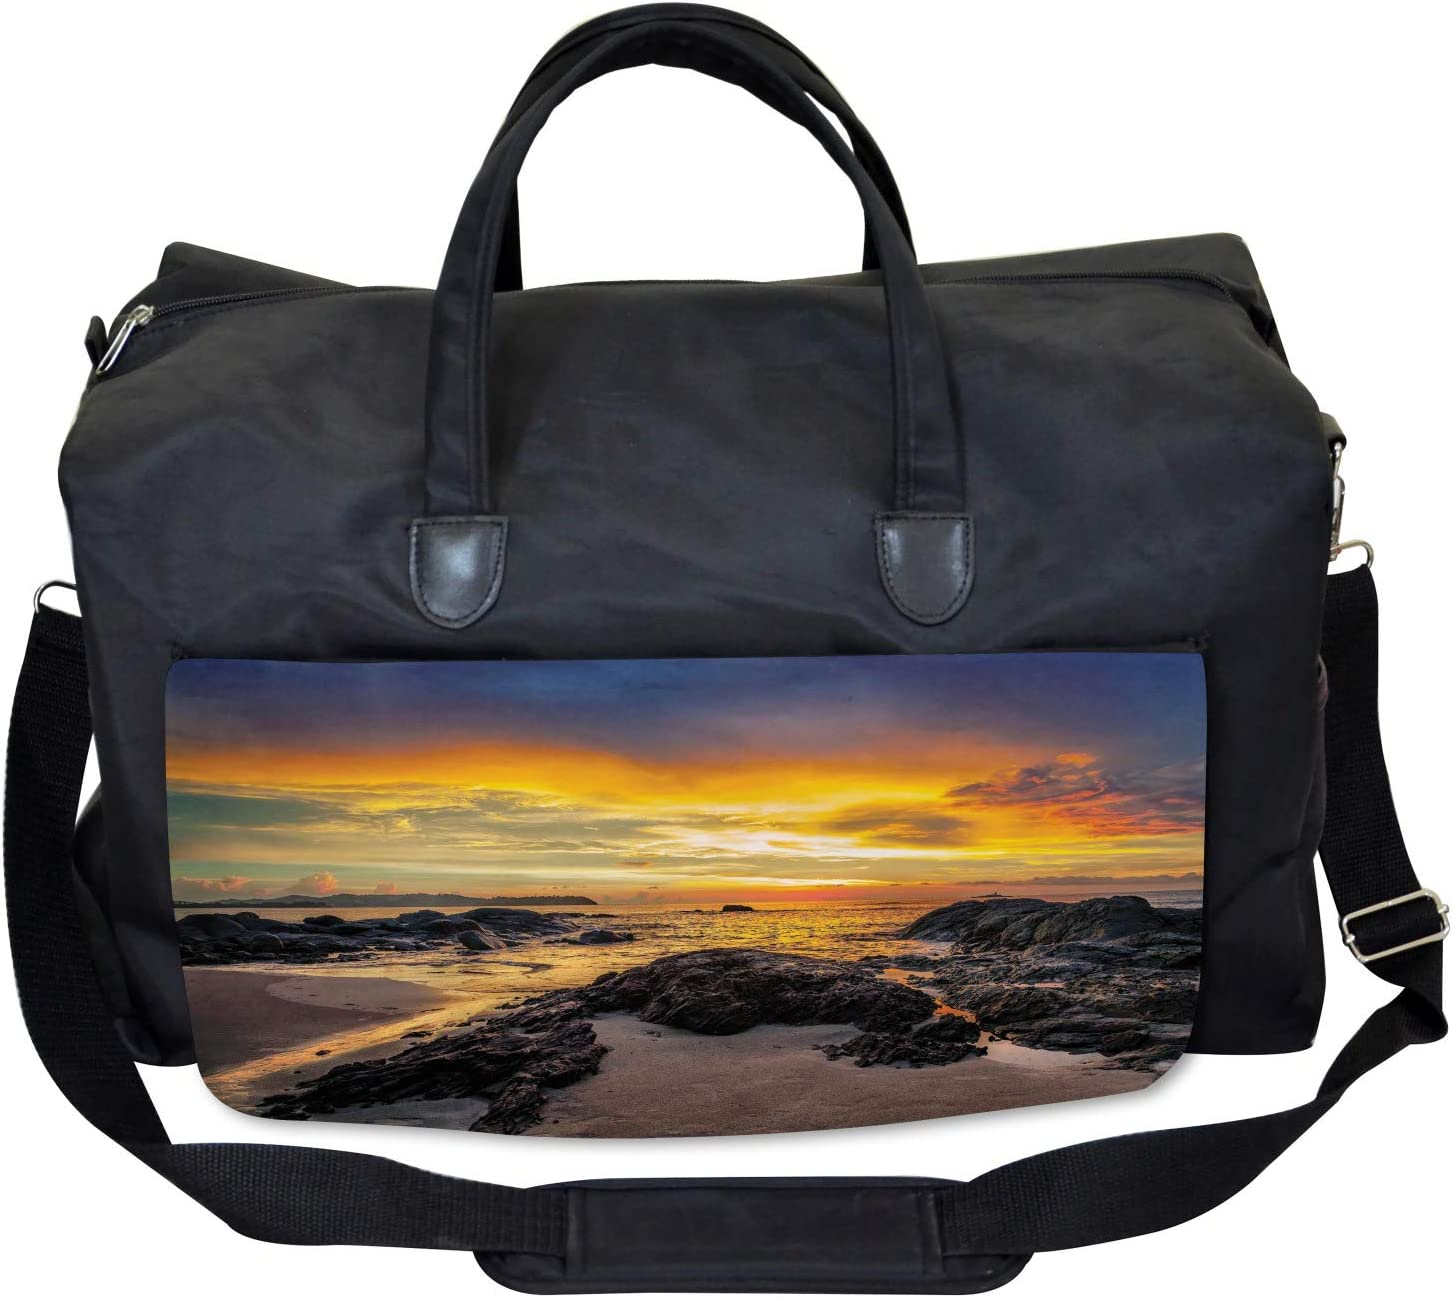 Majestic Sunrise Sky Ambesonne Colorful Gym Bag Large Weekender Carry-on